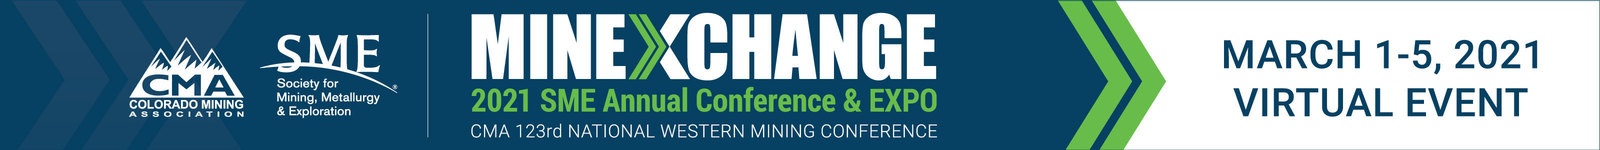 MINEXCHANGE 2021 SME Virtual Annual Conference & Expo logo